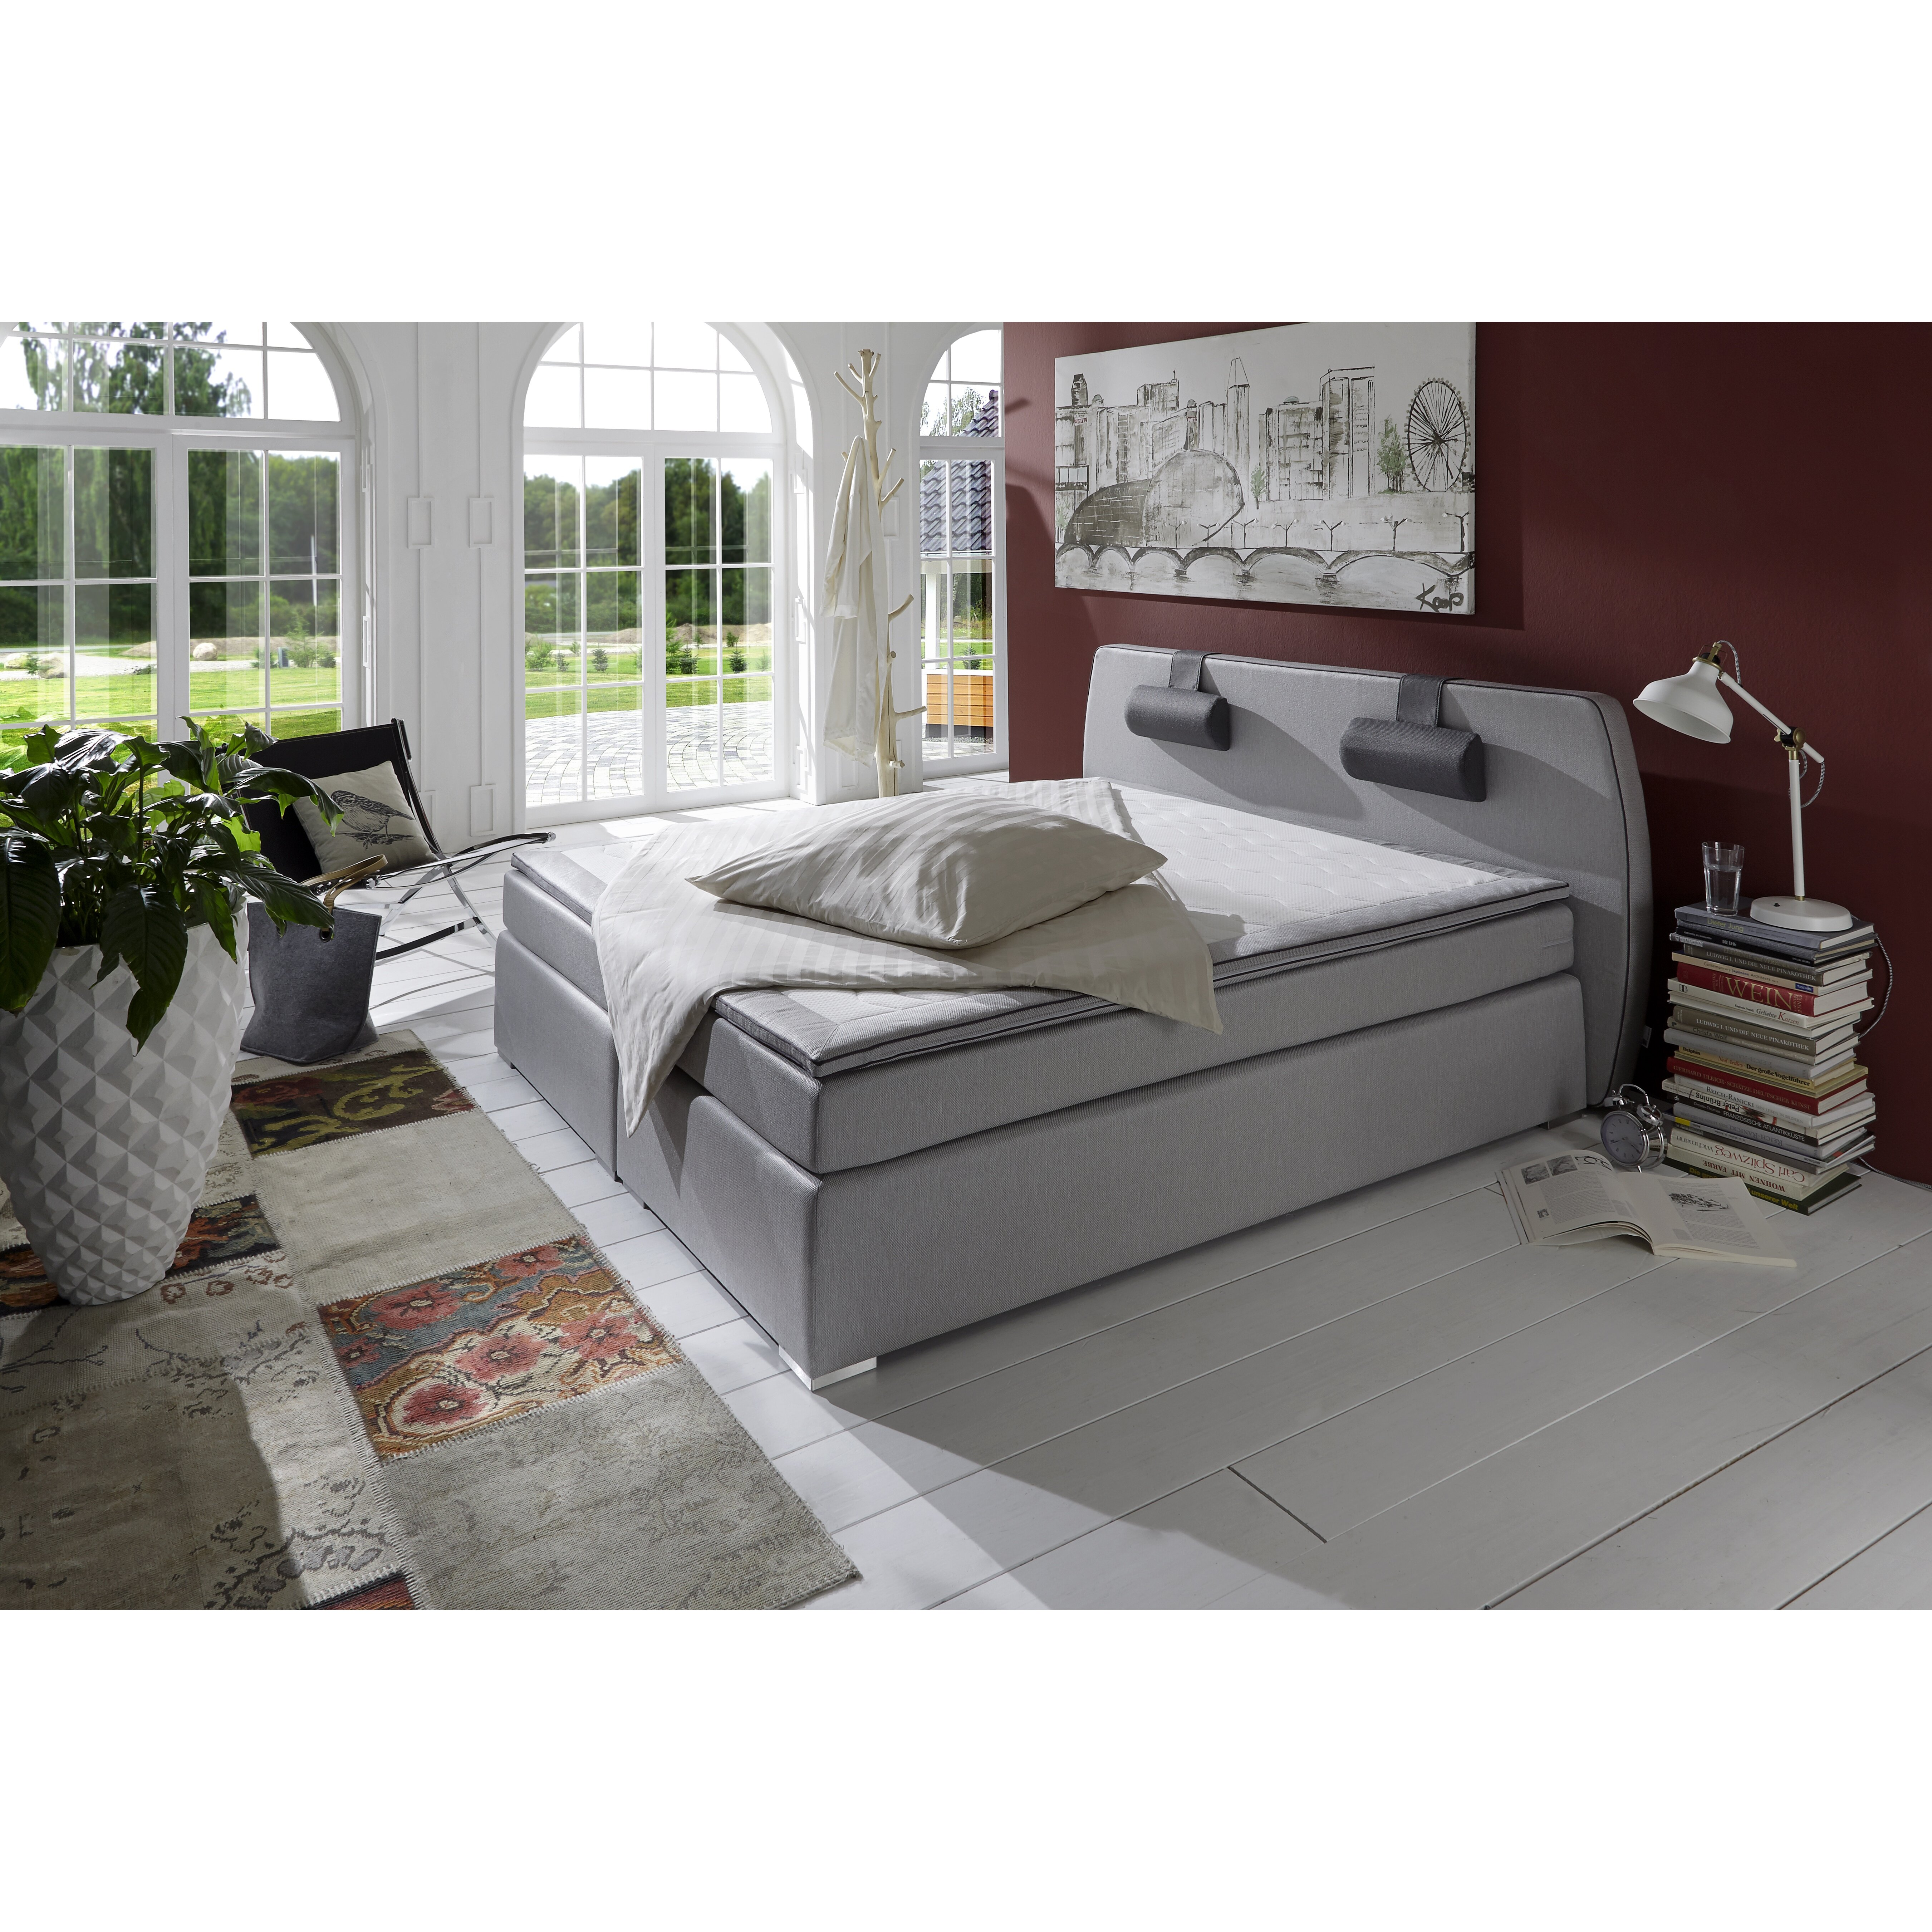 atlantic home collection boxspringbett rex mit topper und. Black Bedroom Furniture Sets. Home Design Ideas